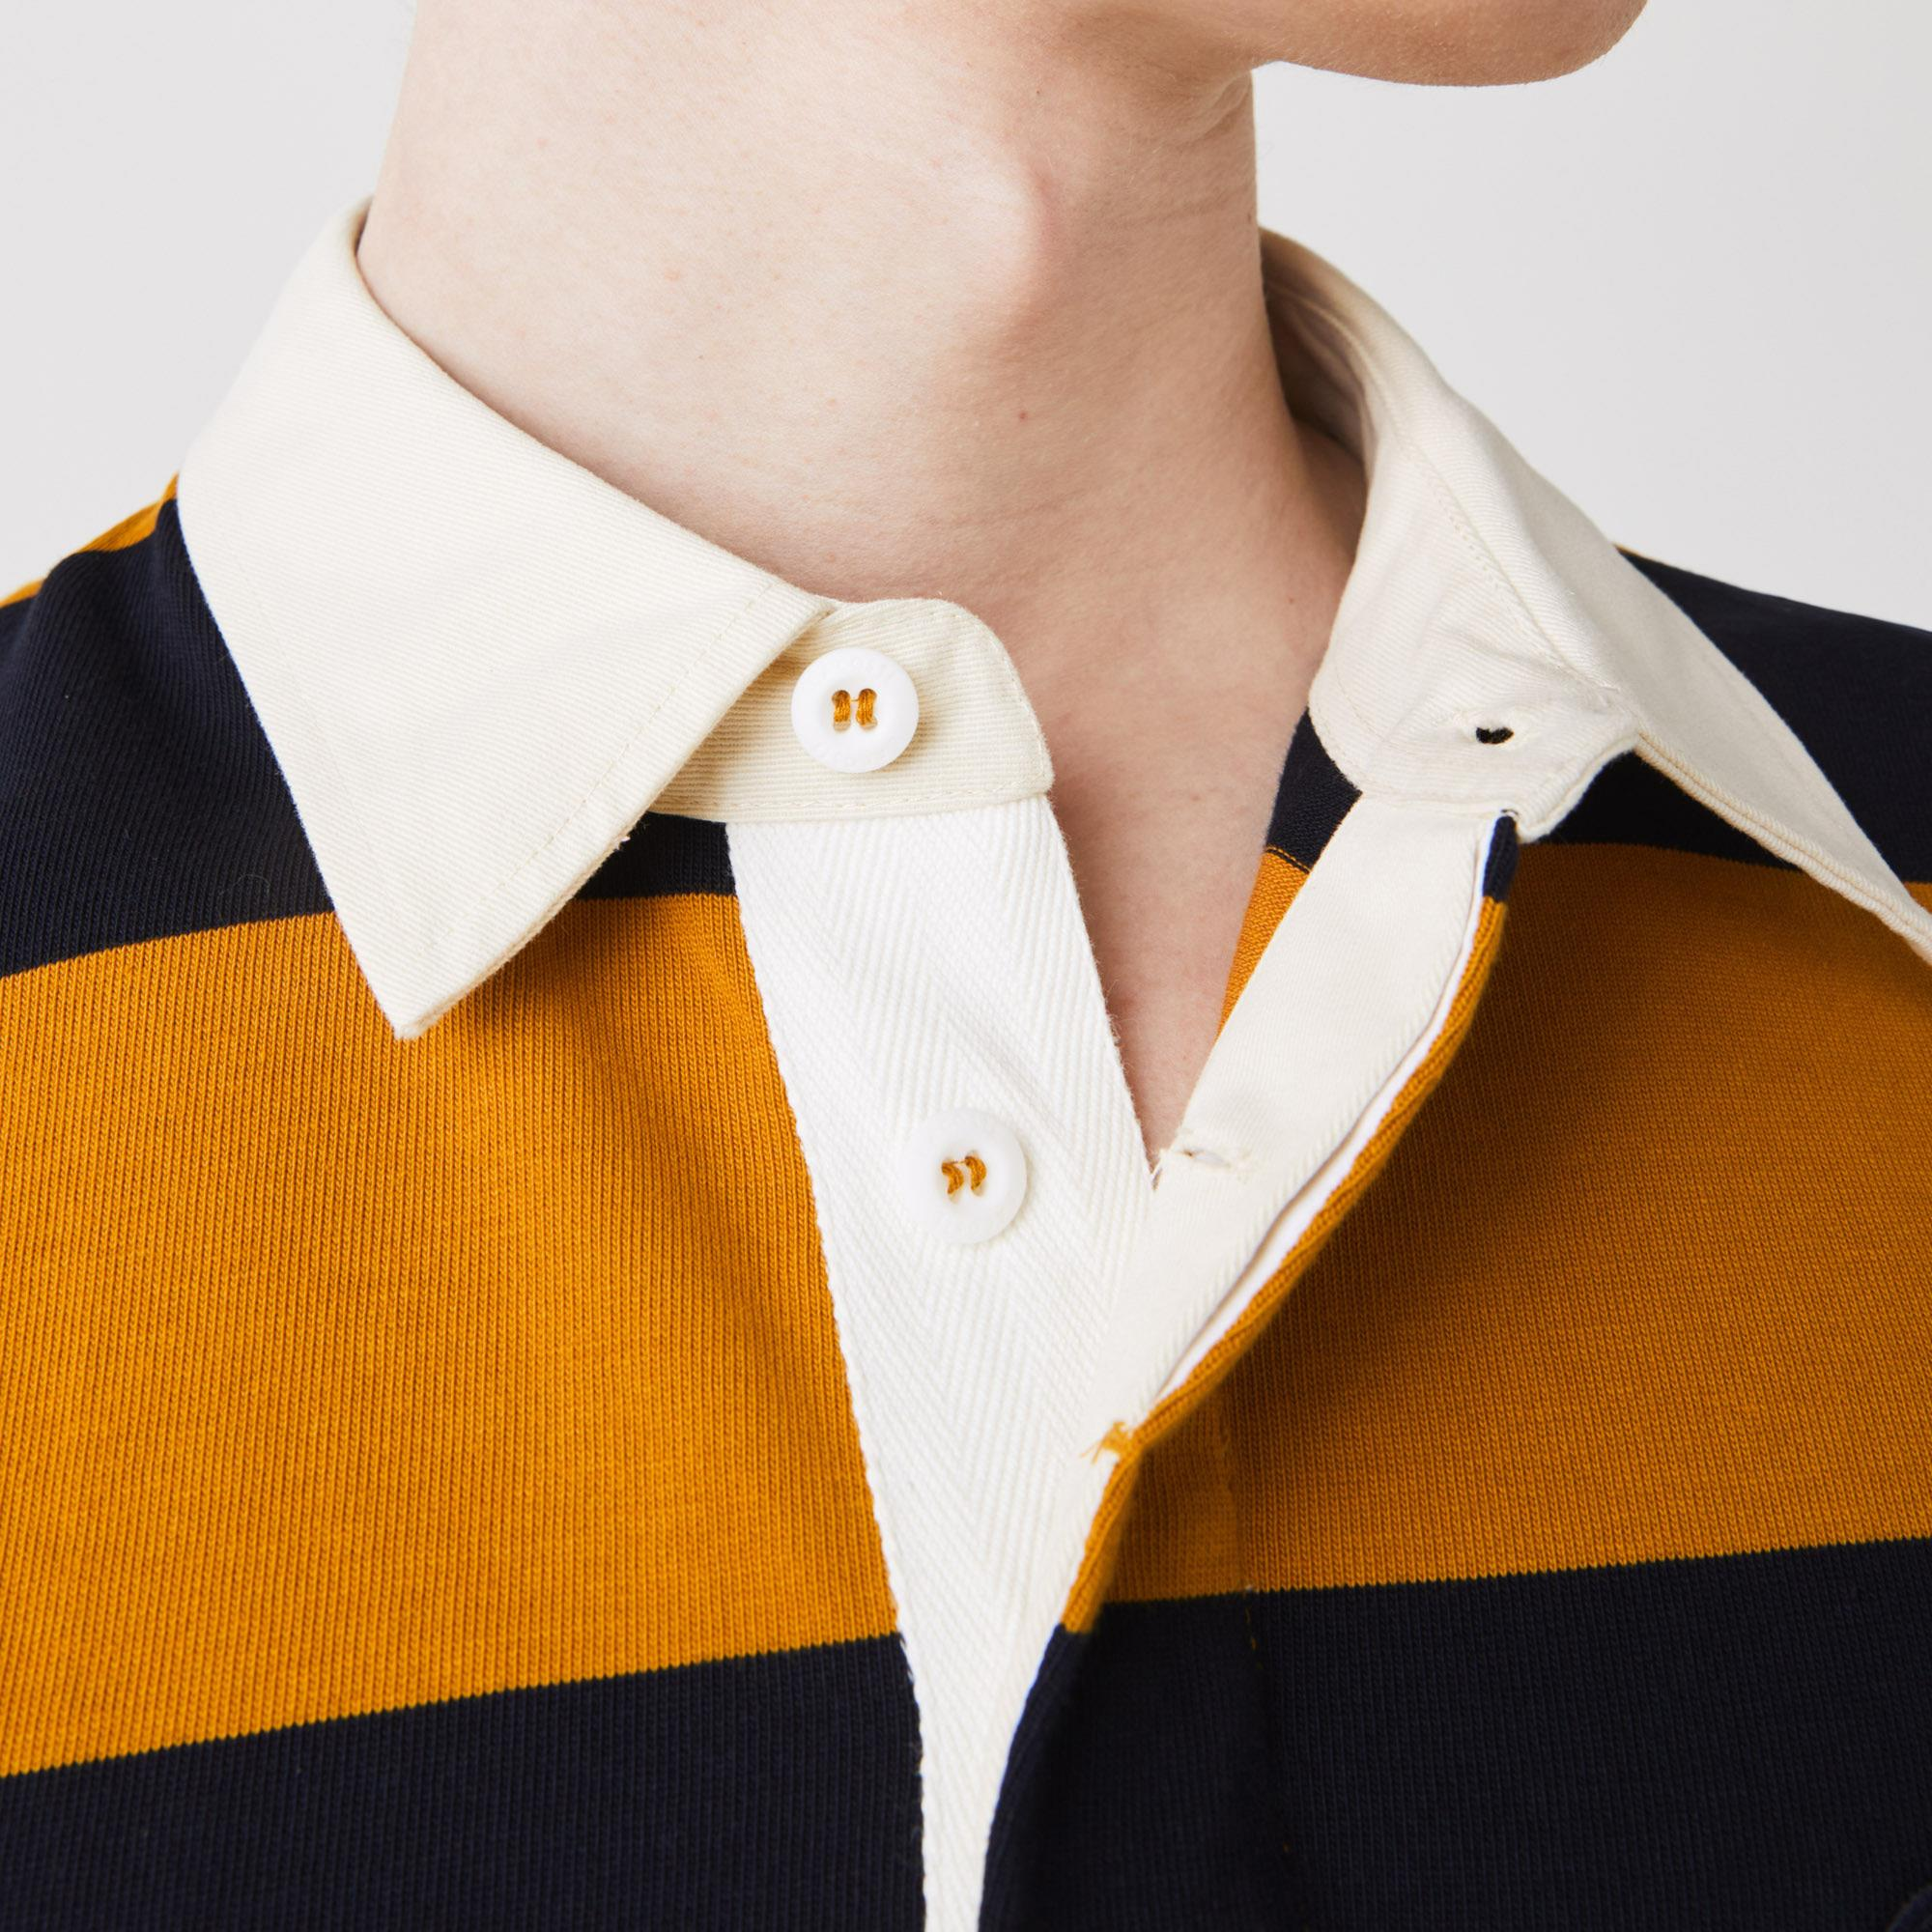 Lacoste Men's Striped Cotton Rugby Shirt